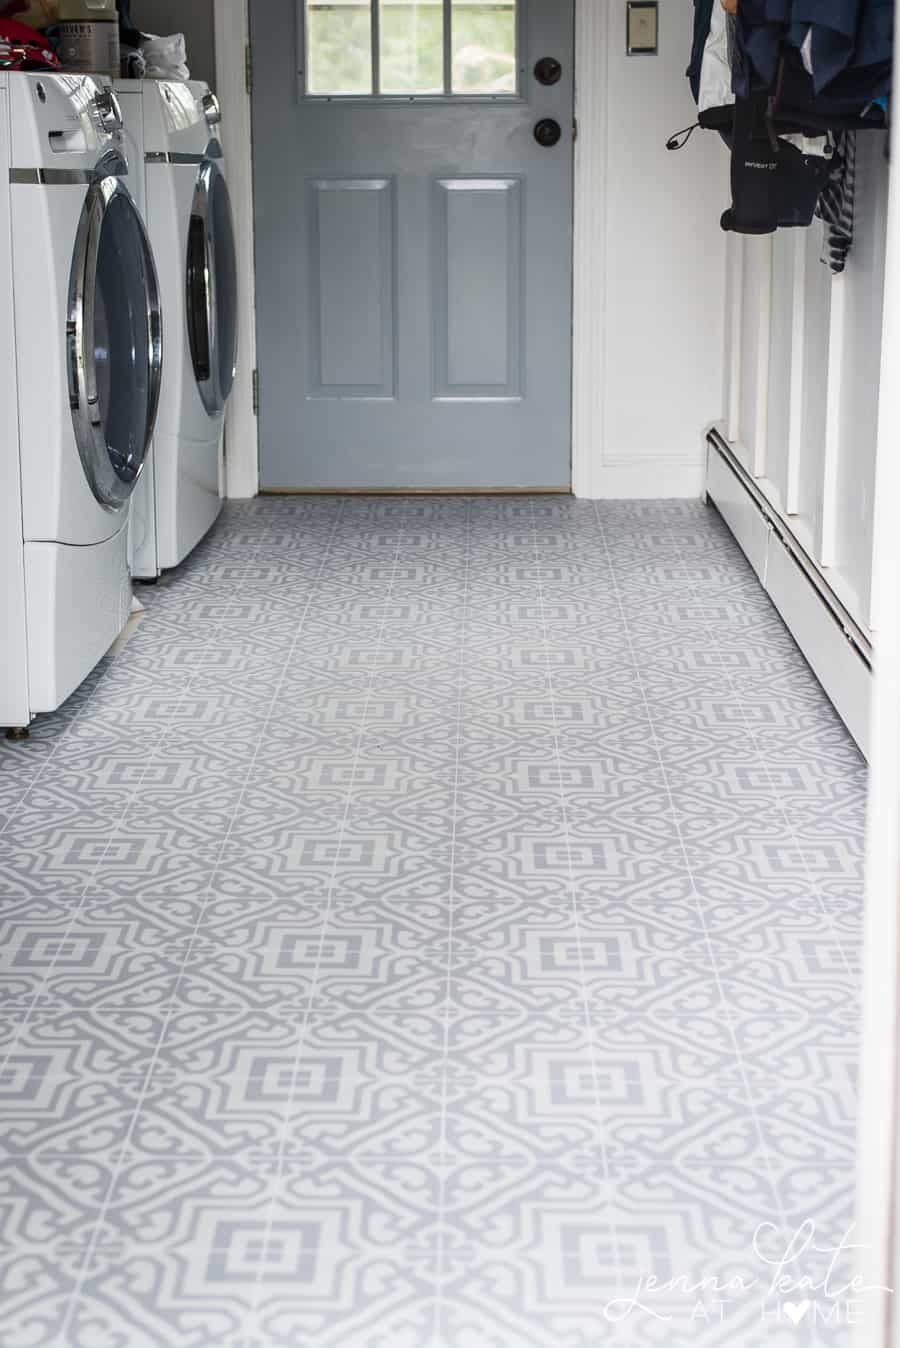 The Laundry Room Floor - Jenna Kate at Home